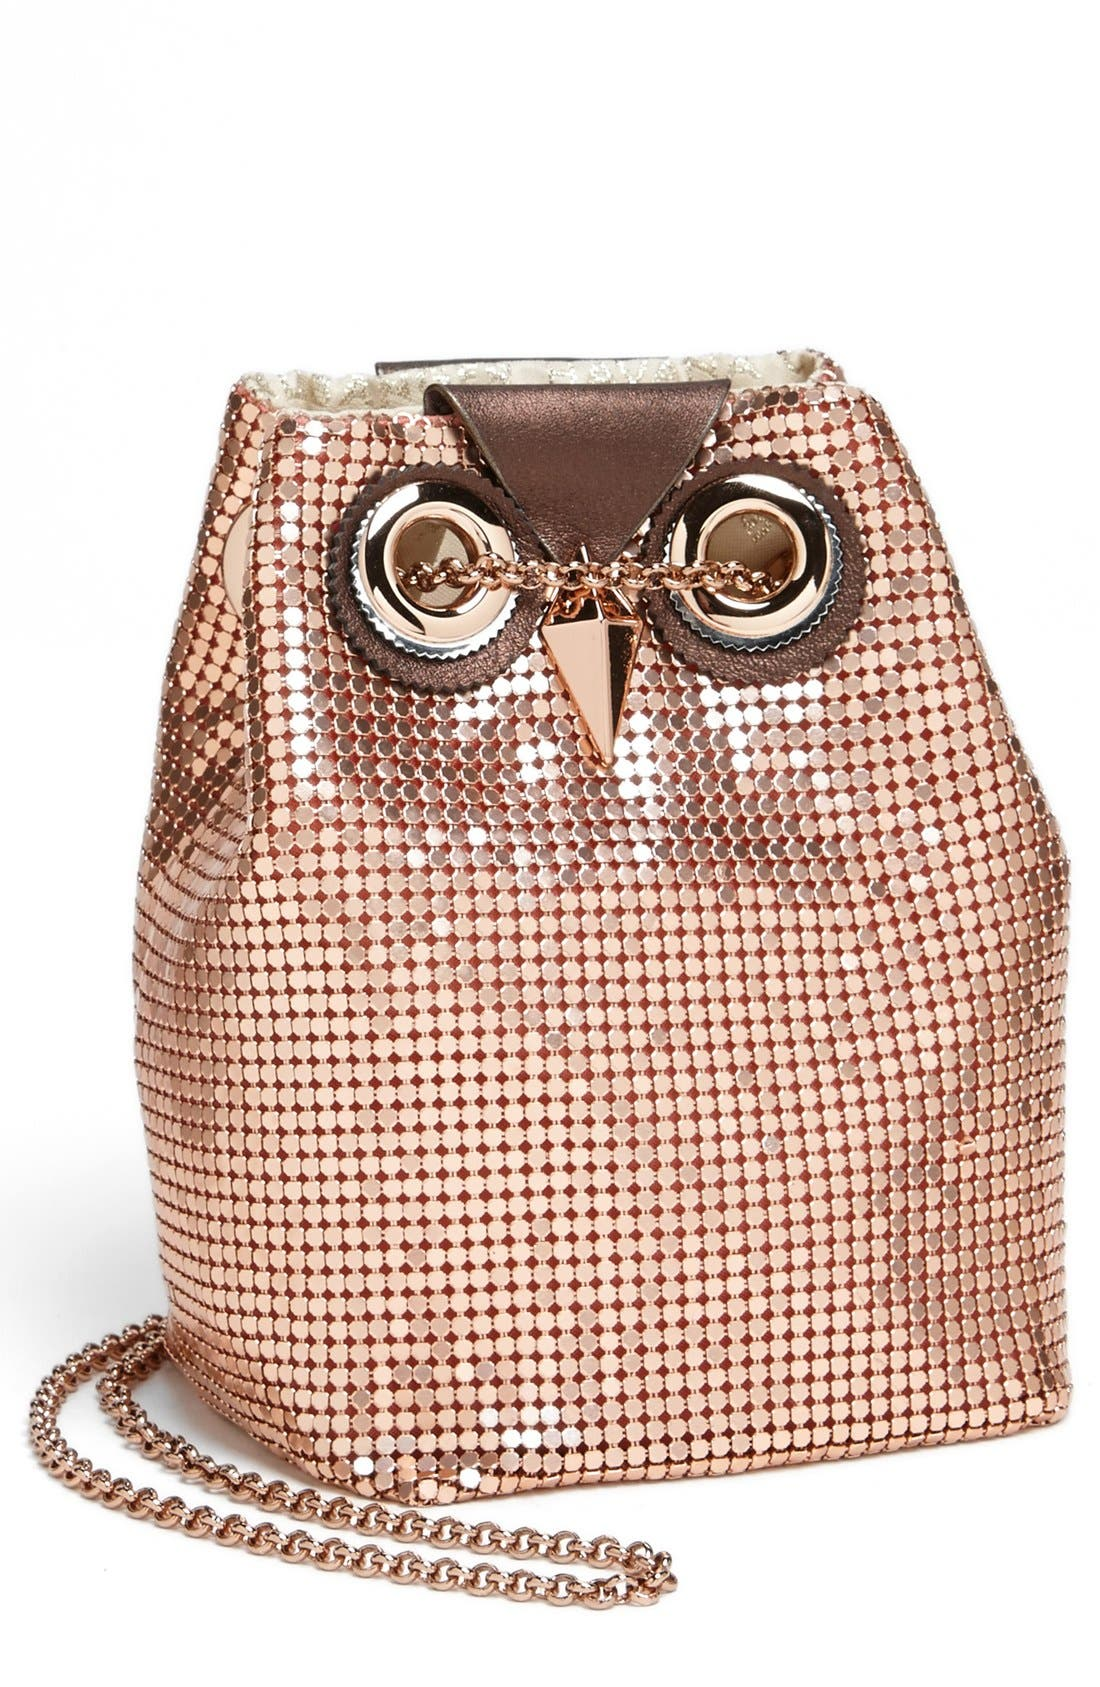 Alternate Image 1 Selected - kate spade new york 'evening belle - night owl' bag